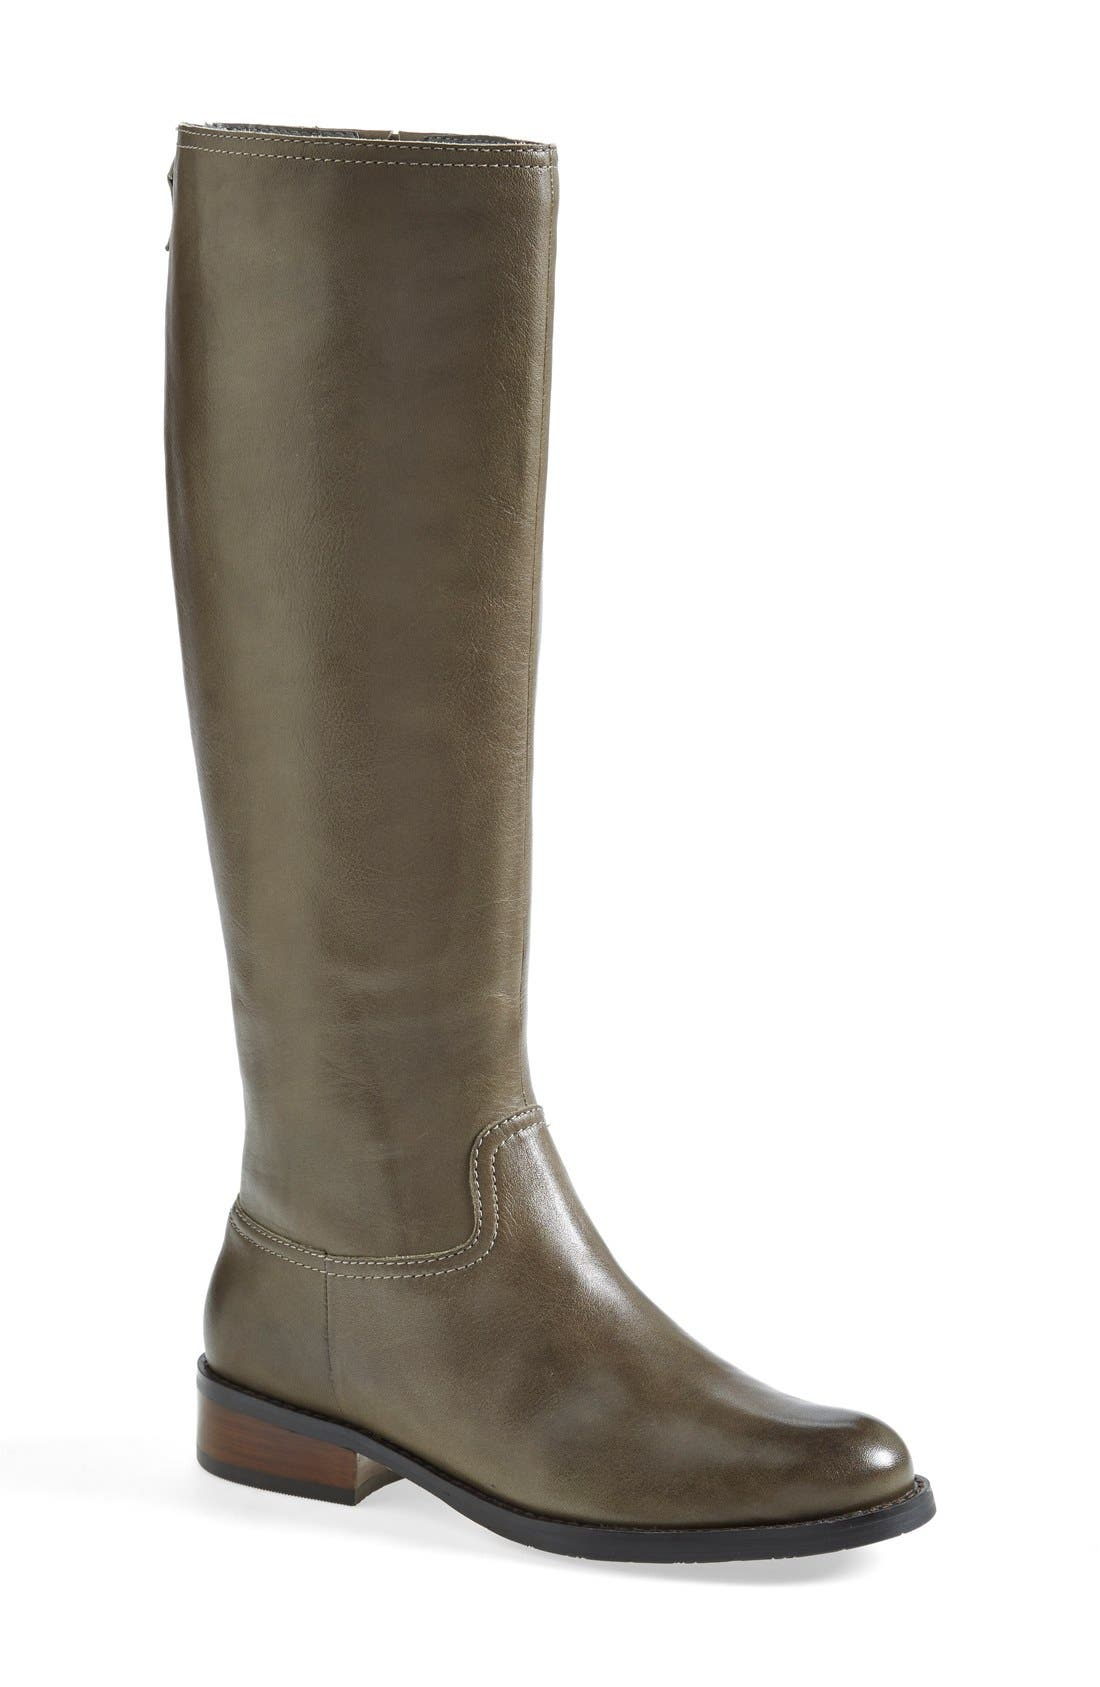 Main Image - Halogen® 'Ginger' Knee High Boot (Wide Calf) (Women)